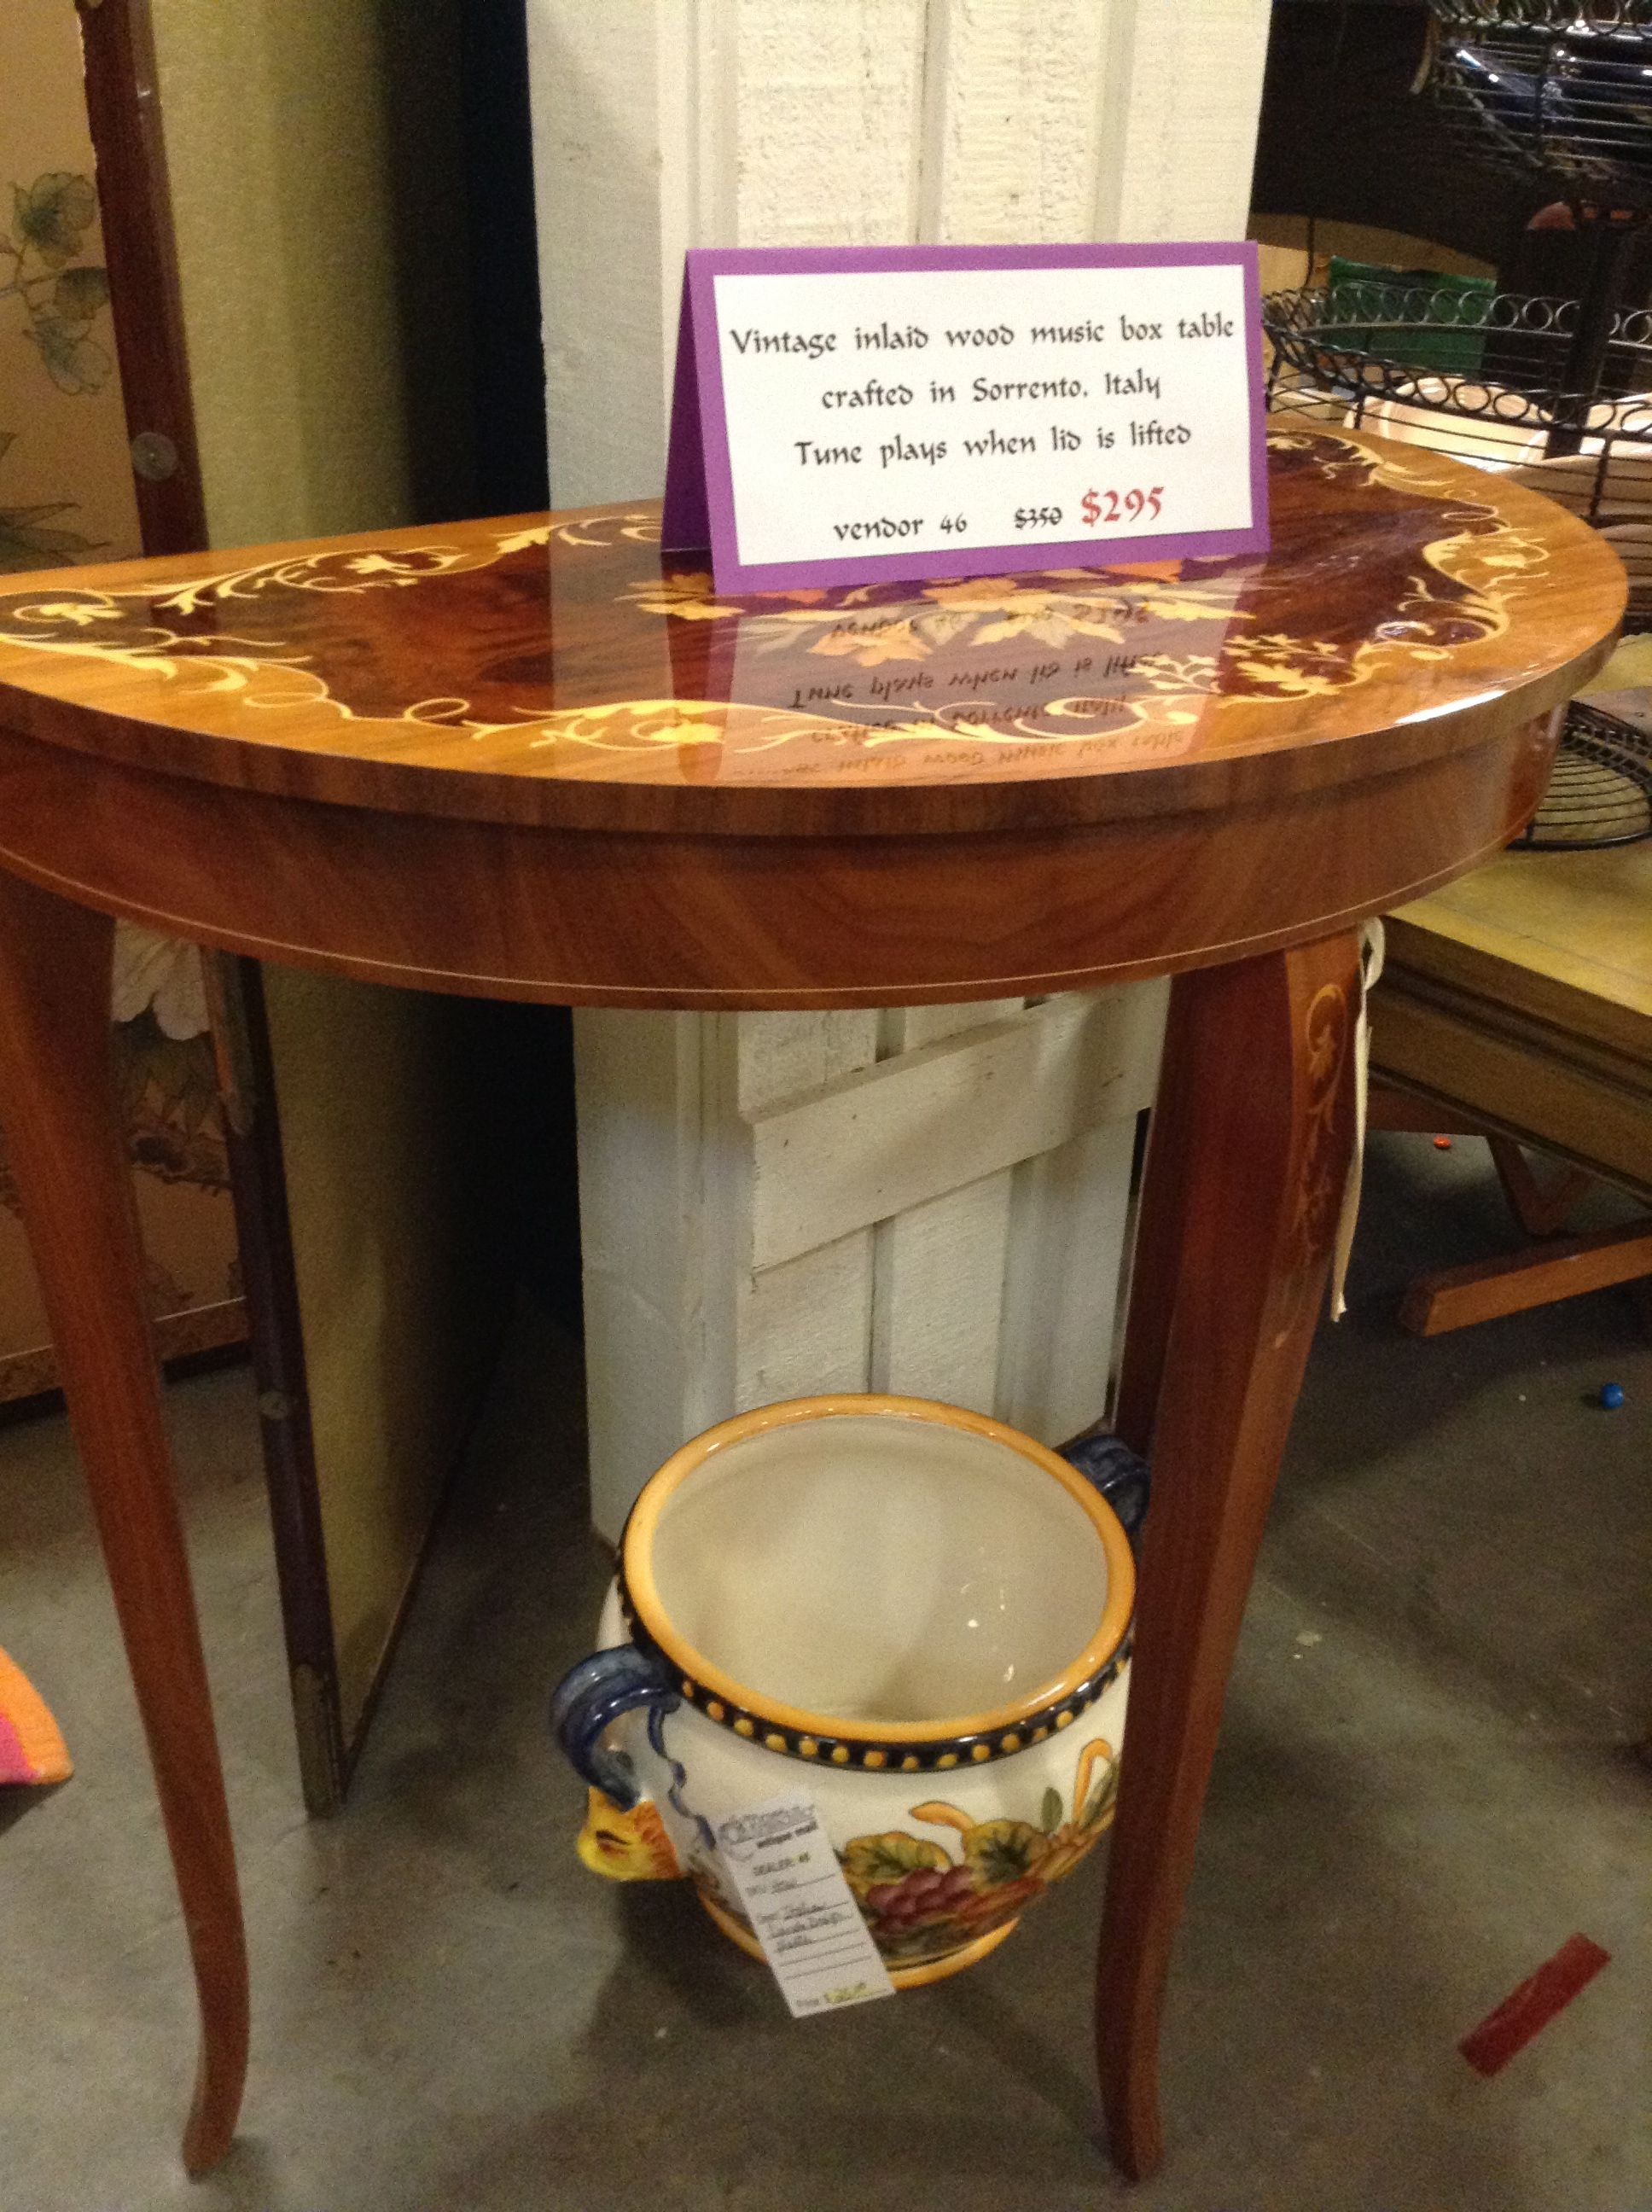 Vintage Inlaid Wood Music Box Table From Soro Italy Plays When The Lid Is Lifted 249